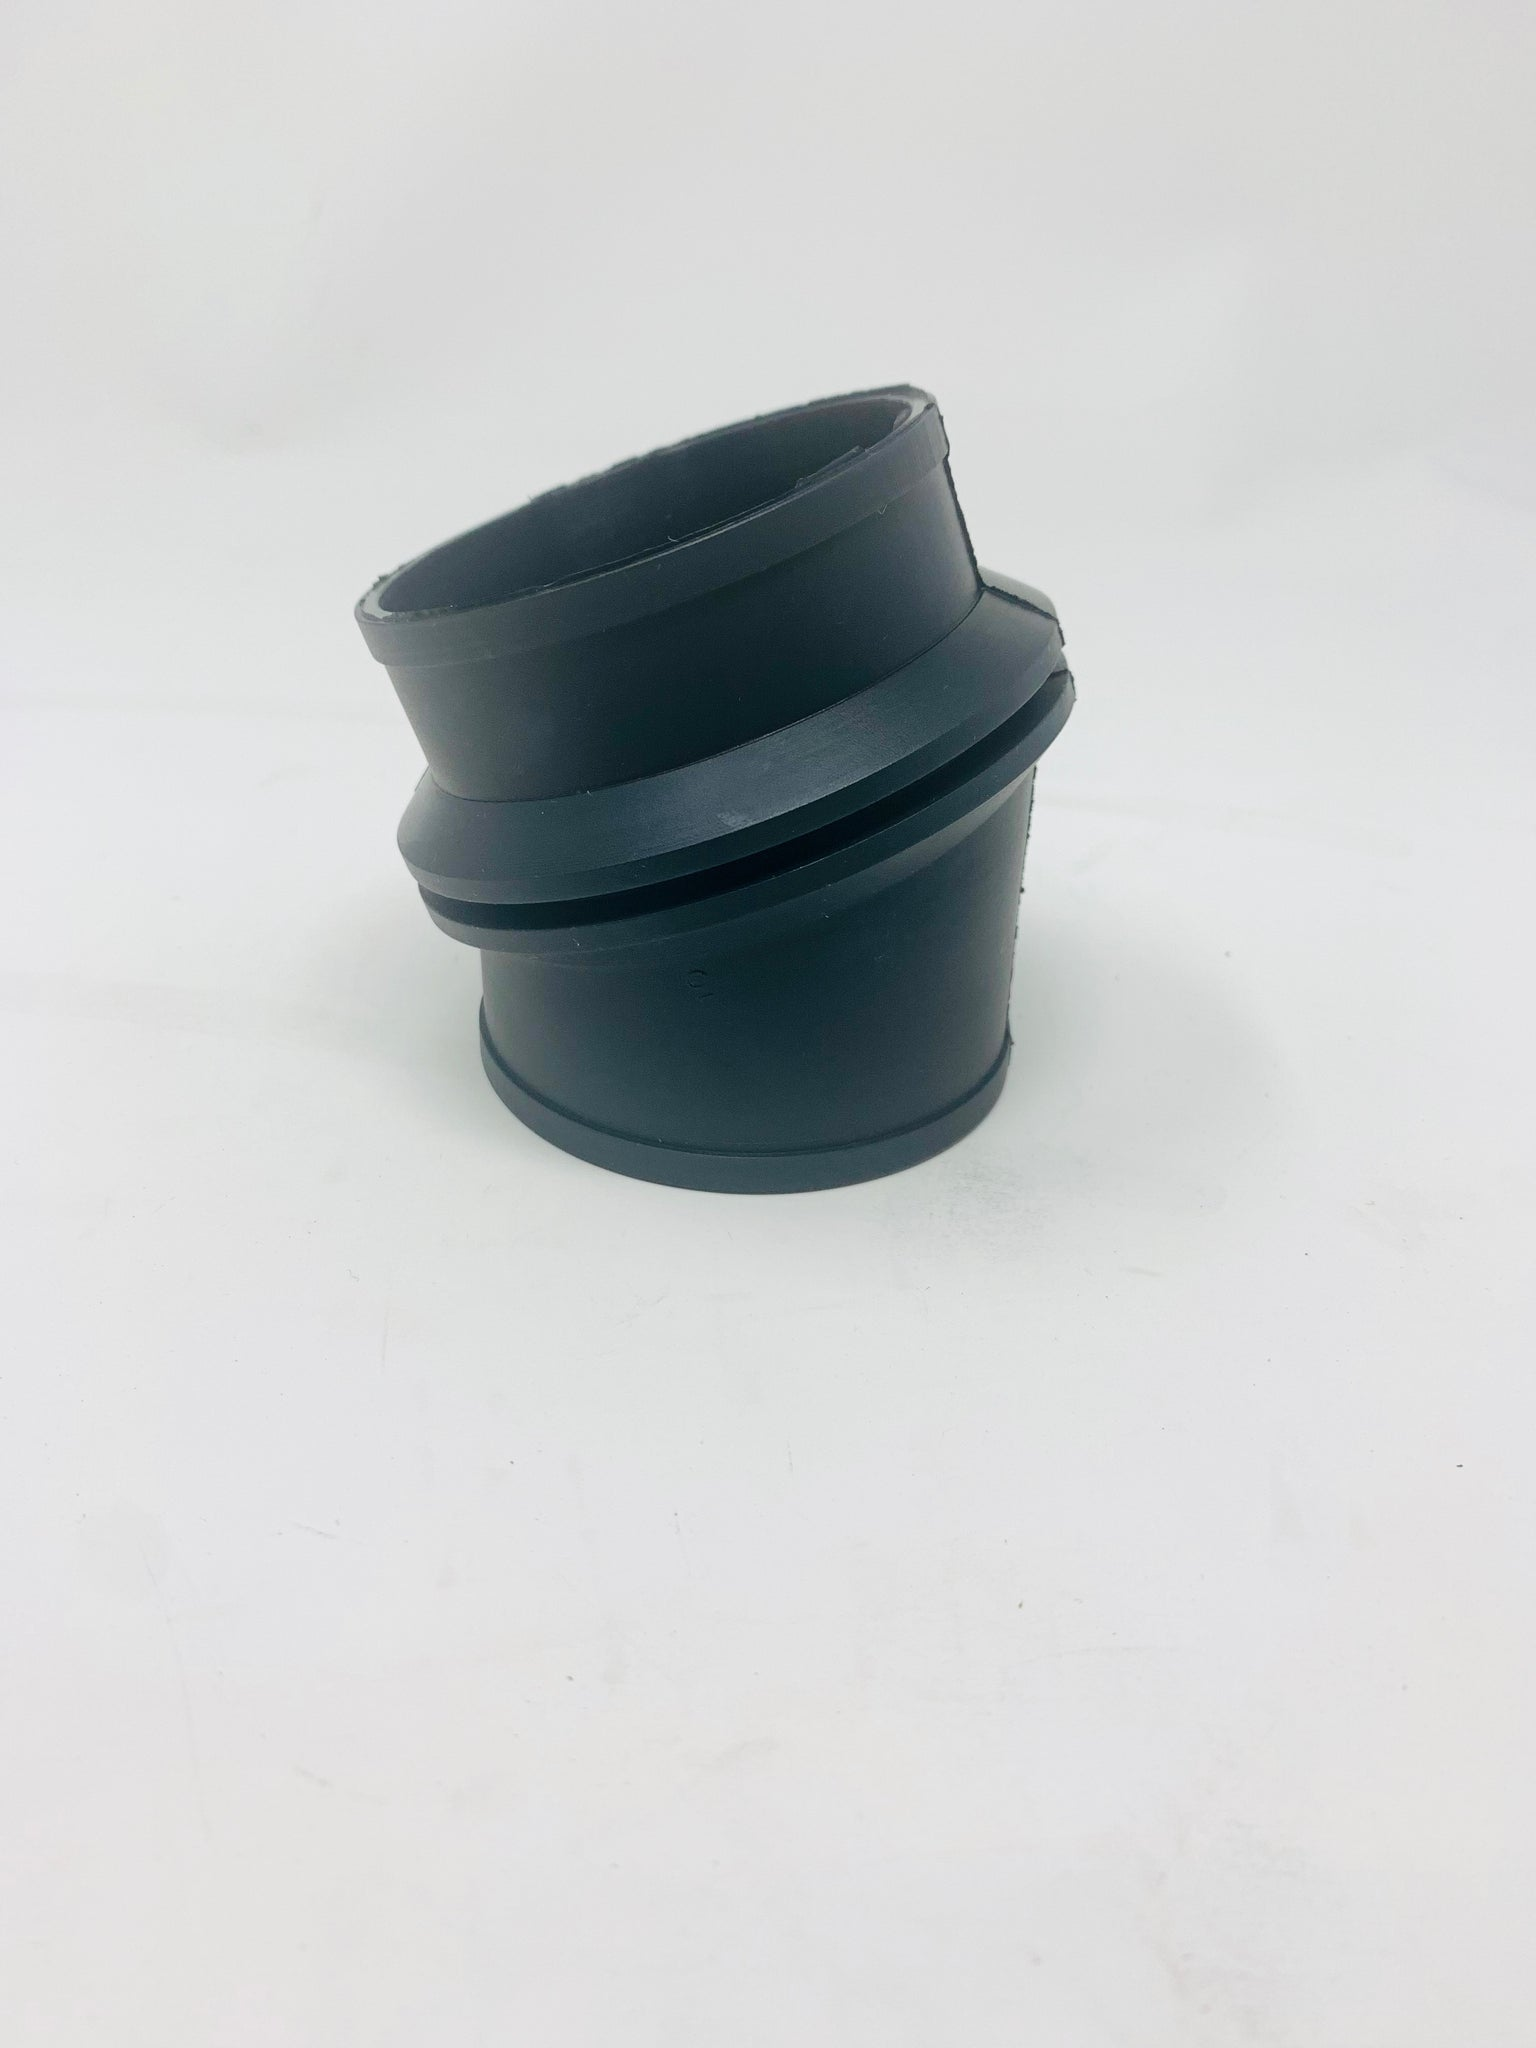 Rubber Air Box Collar for Atom 80, Moster 185. Power Gold